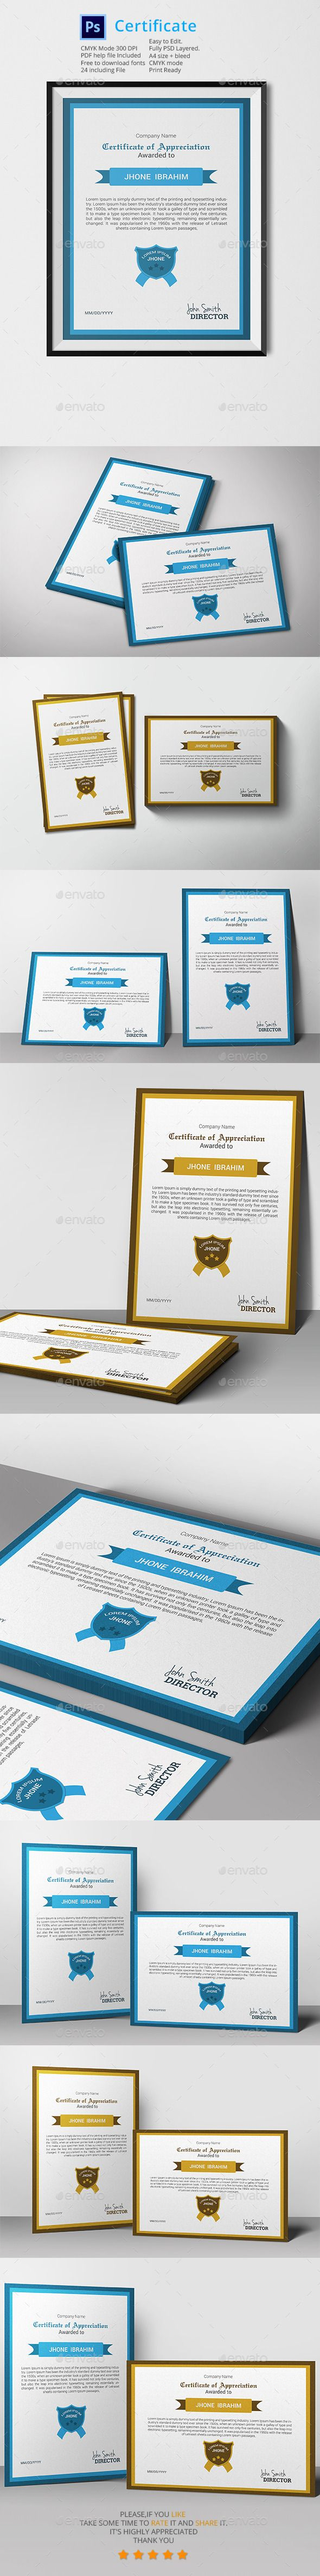 346 best certificate templates images on pinterest certificate certificate template by graphicalark certificate template is very easy to use and change textcolorsizelook and everything because i made it on photoshop yadclub Image collections